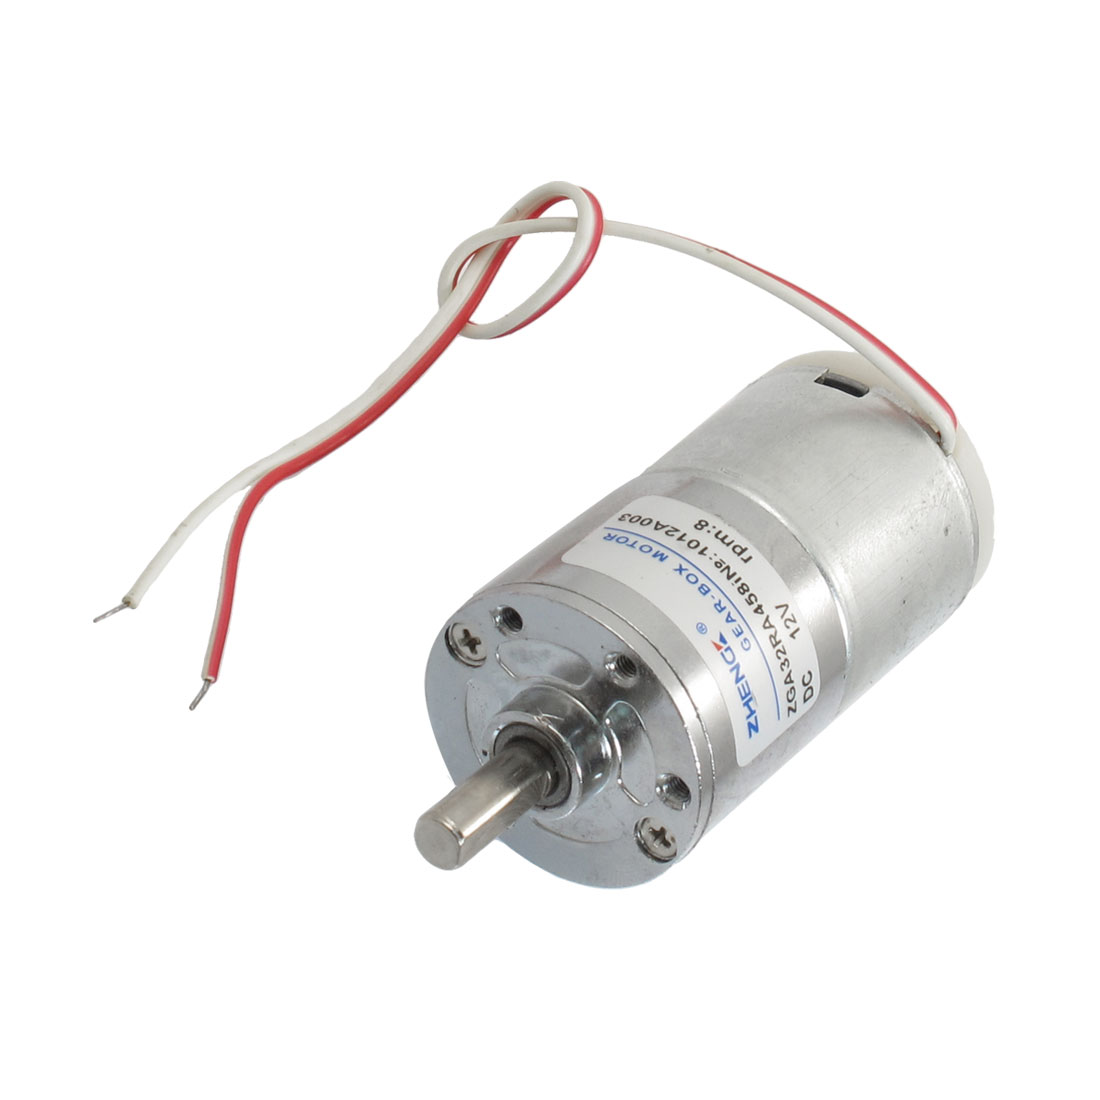 Wired 6mm Shaft Diameter Electric Oven Geared Motor 12VDC 8RPM